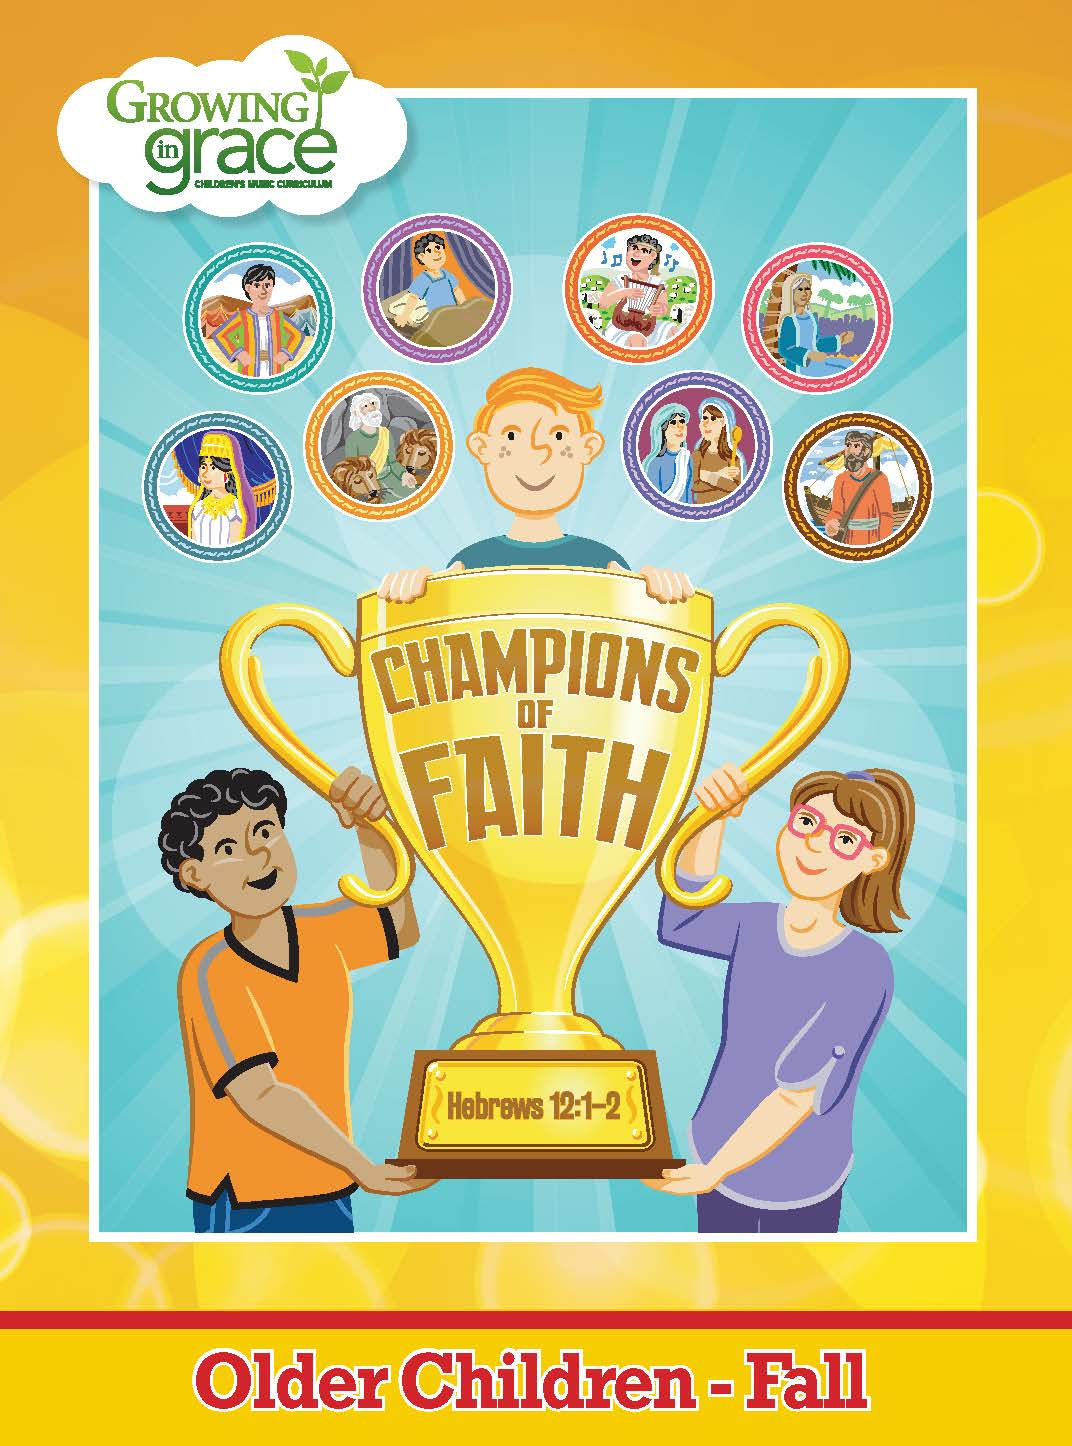 Champions of Faith from Growing in Grace: Older Children - Fall